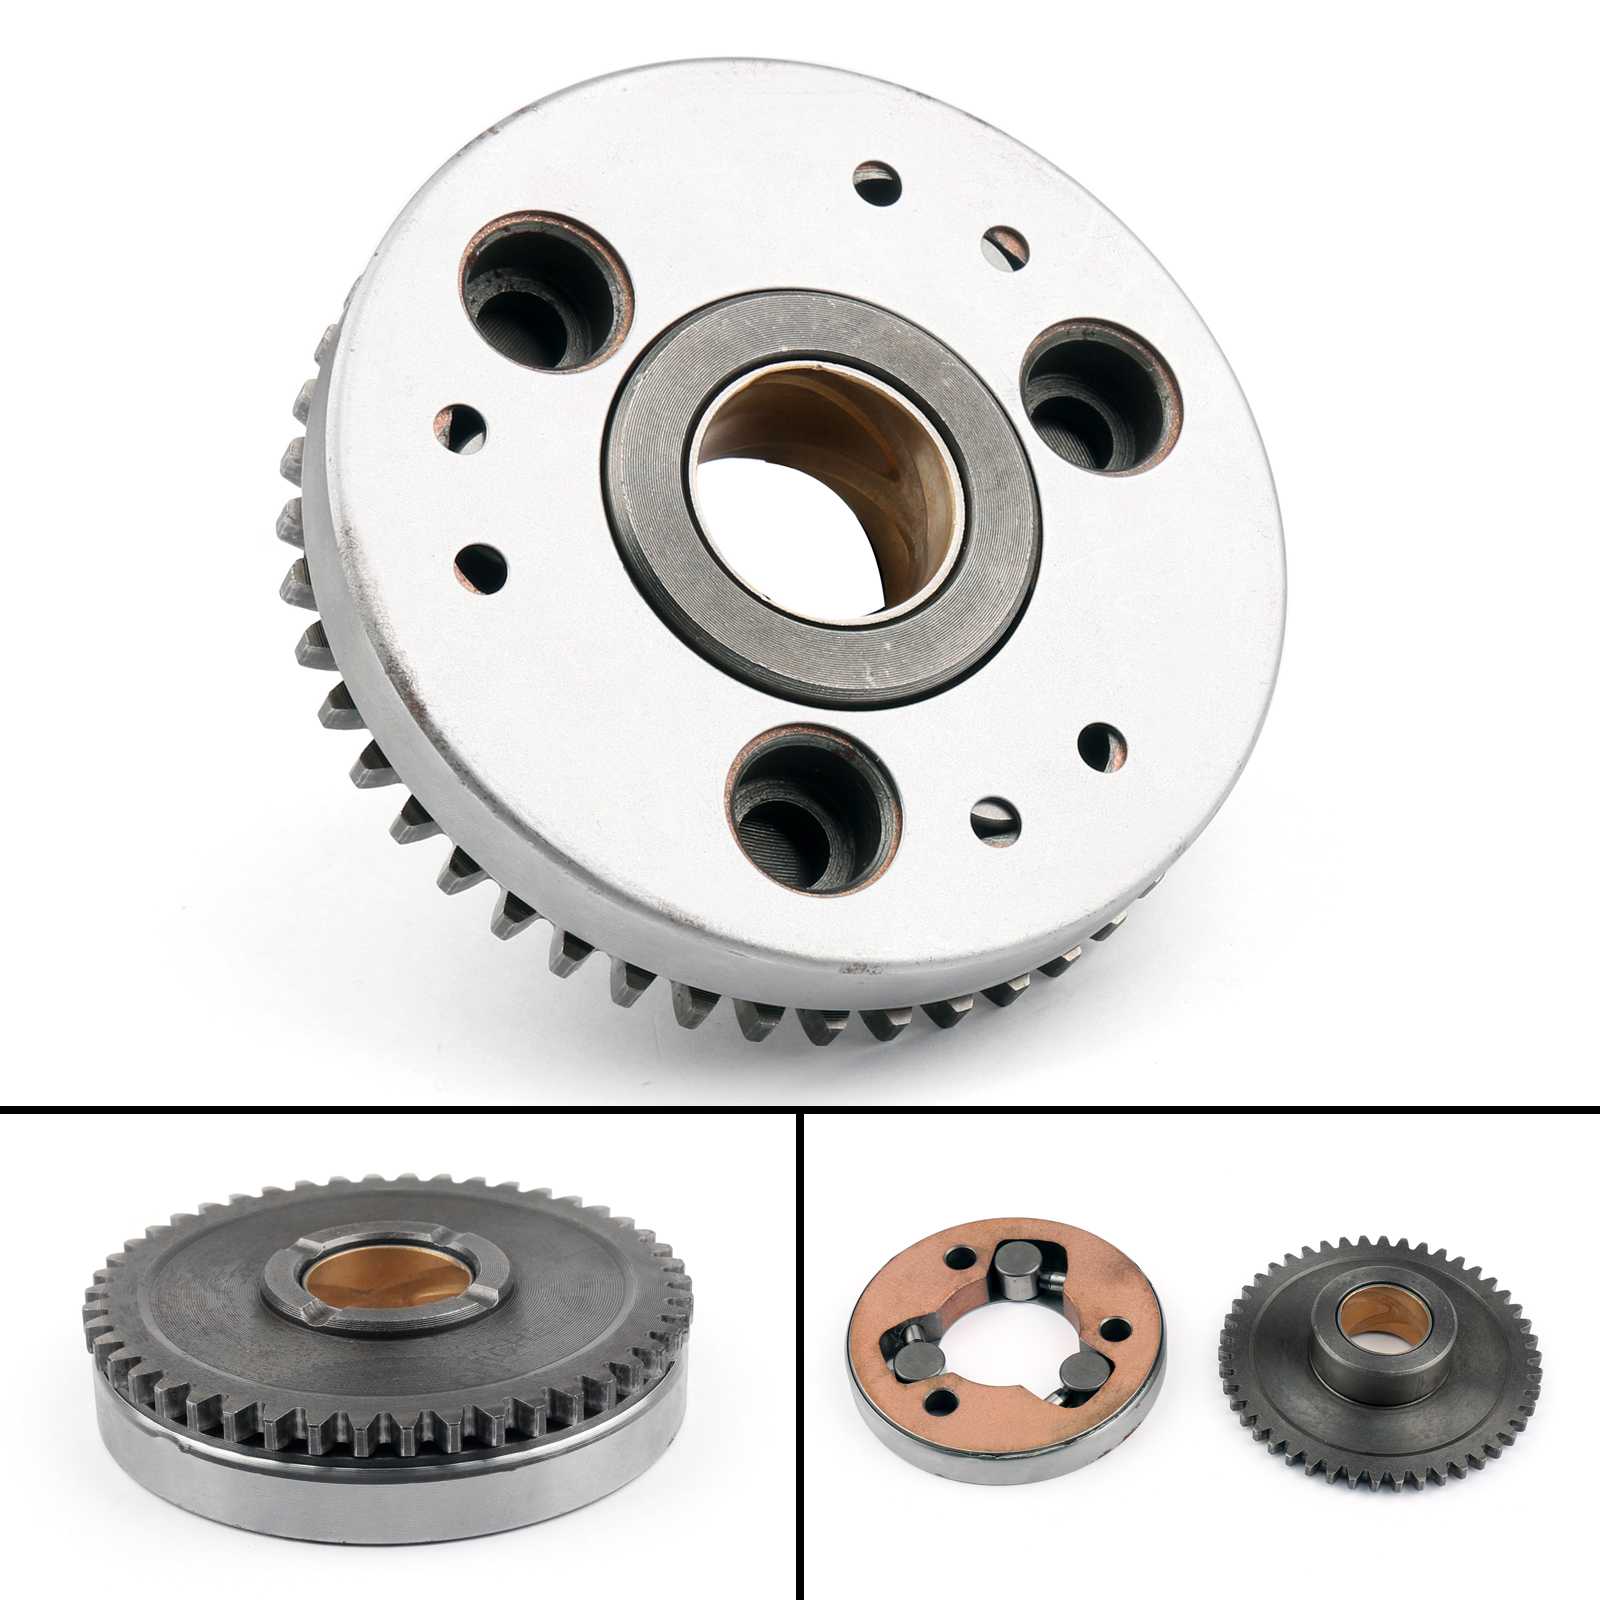 Details about One Way Starter Clutch With Gear 5VL-E5517 For Yamaha YBR125  TTR125E XT125 X/R B